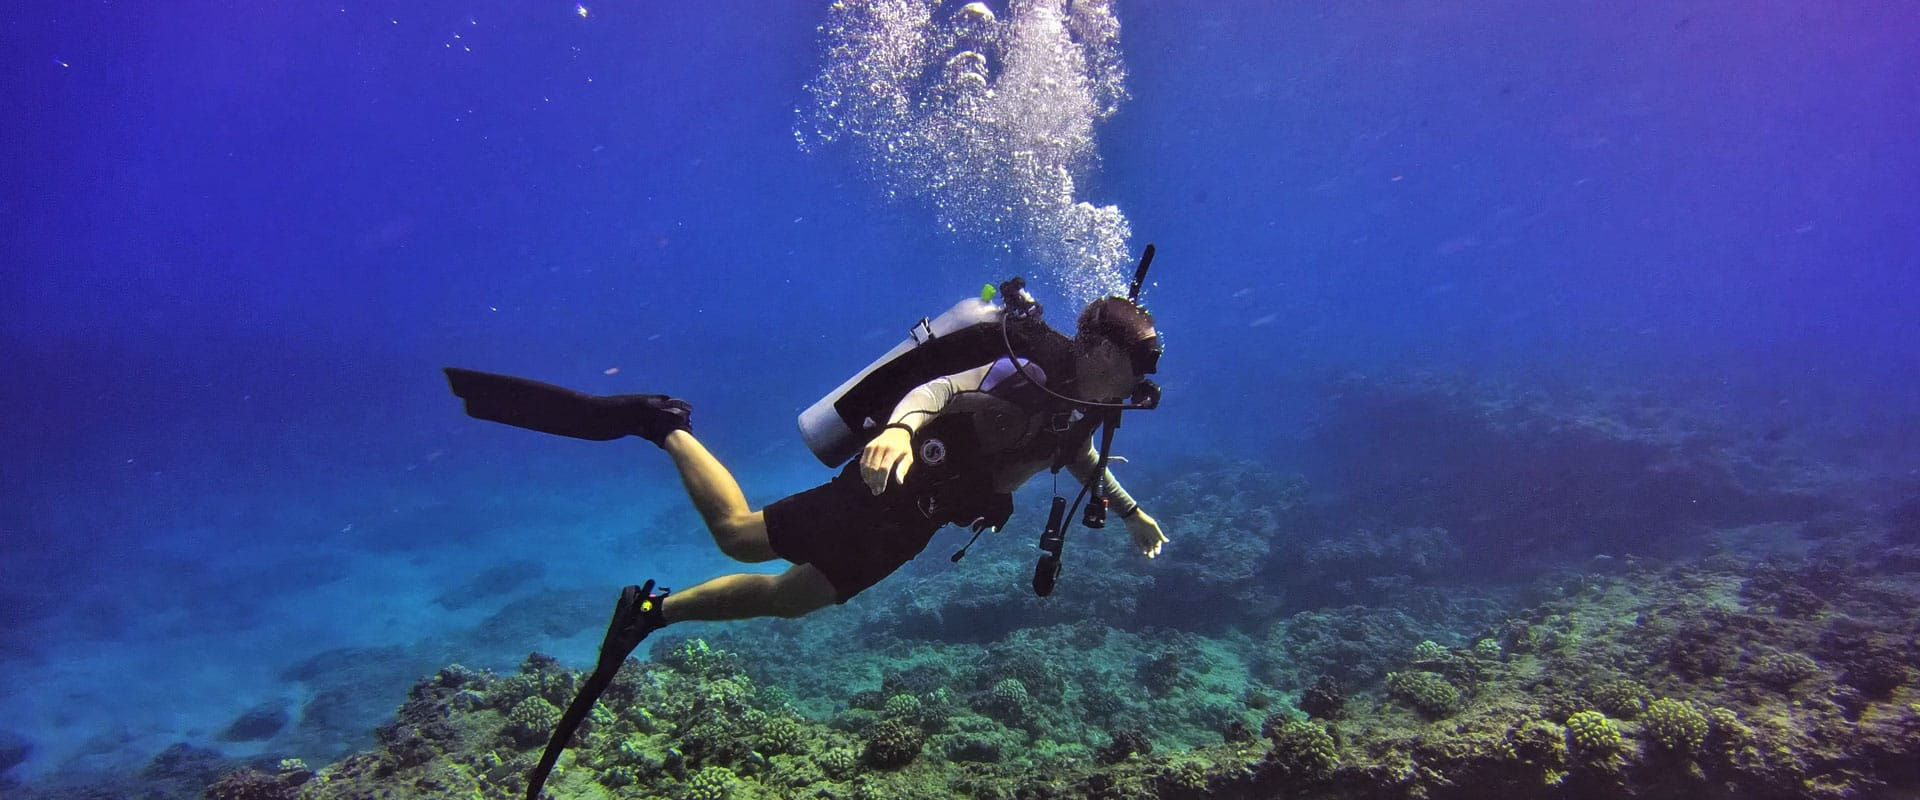 Scuba dive at Oahu's best dive spots